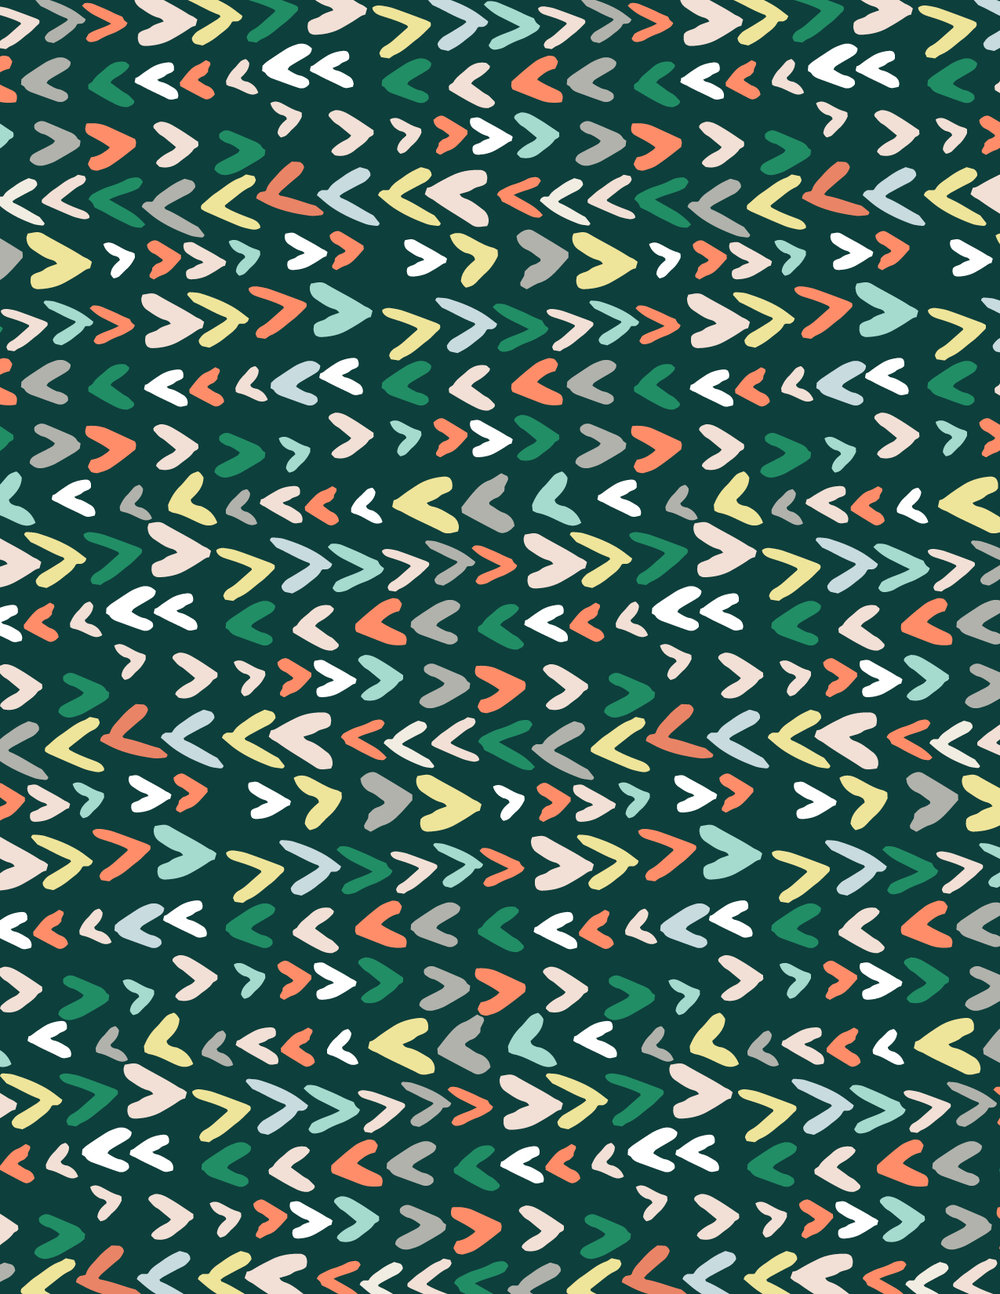 Jessbruggink_patterns_new4.jpg